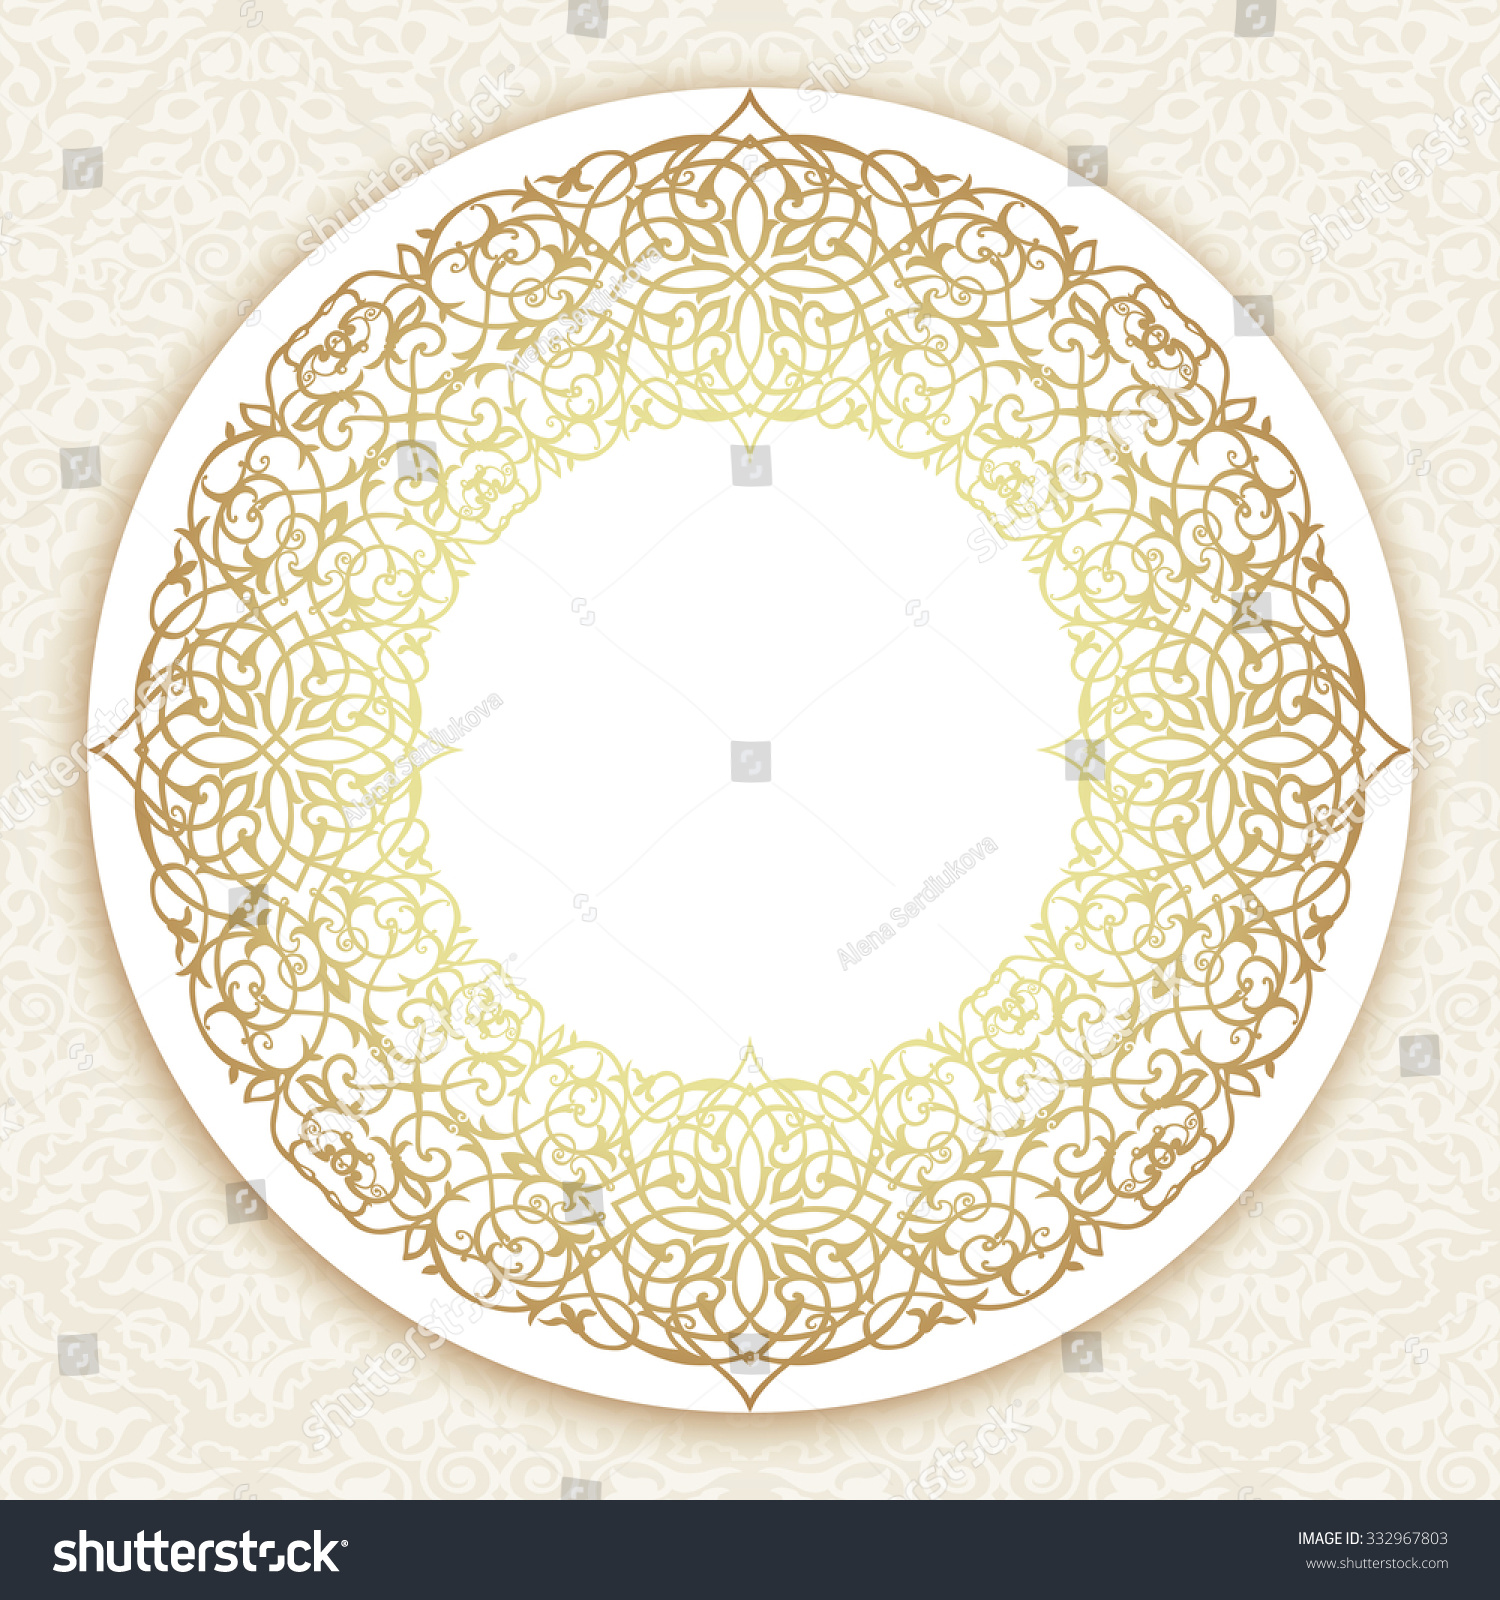 gold round border damask motif ornamental stock vector 332967803